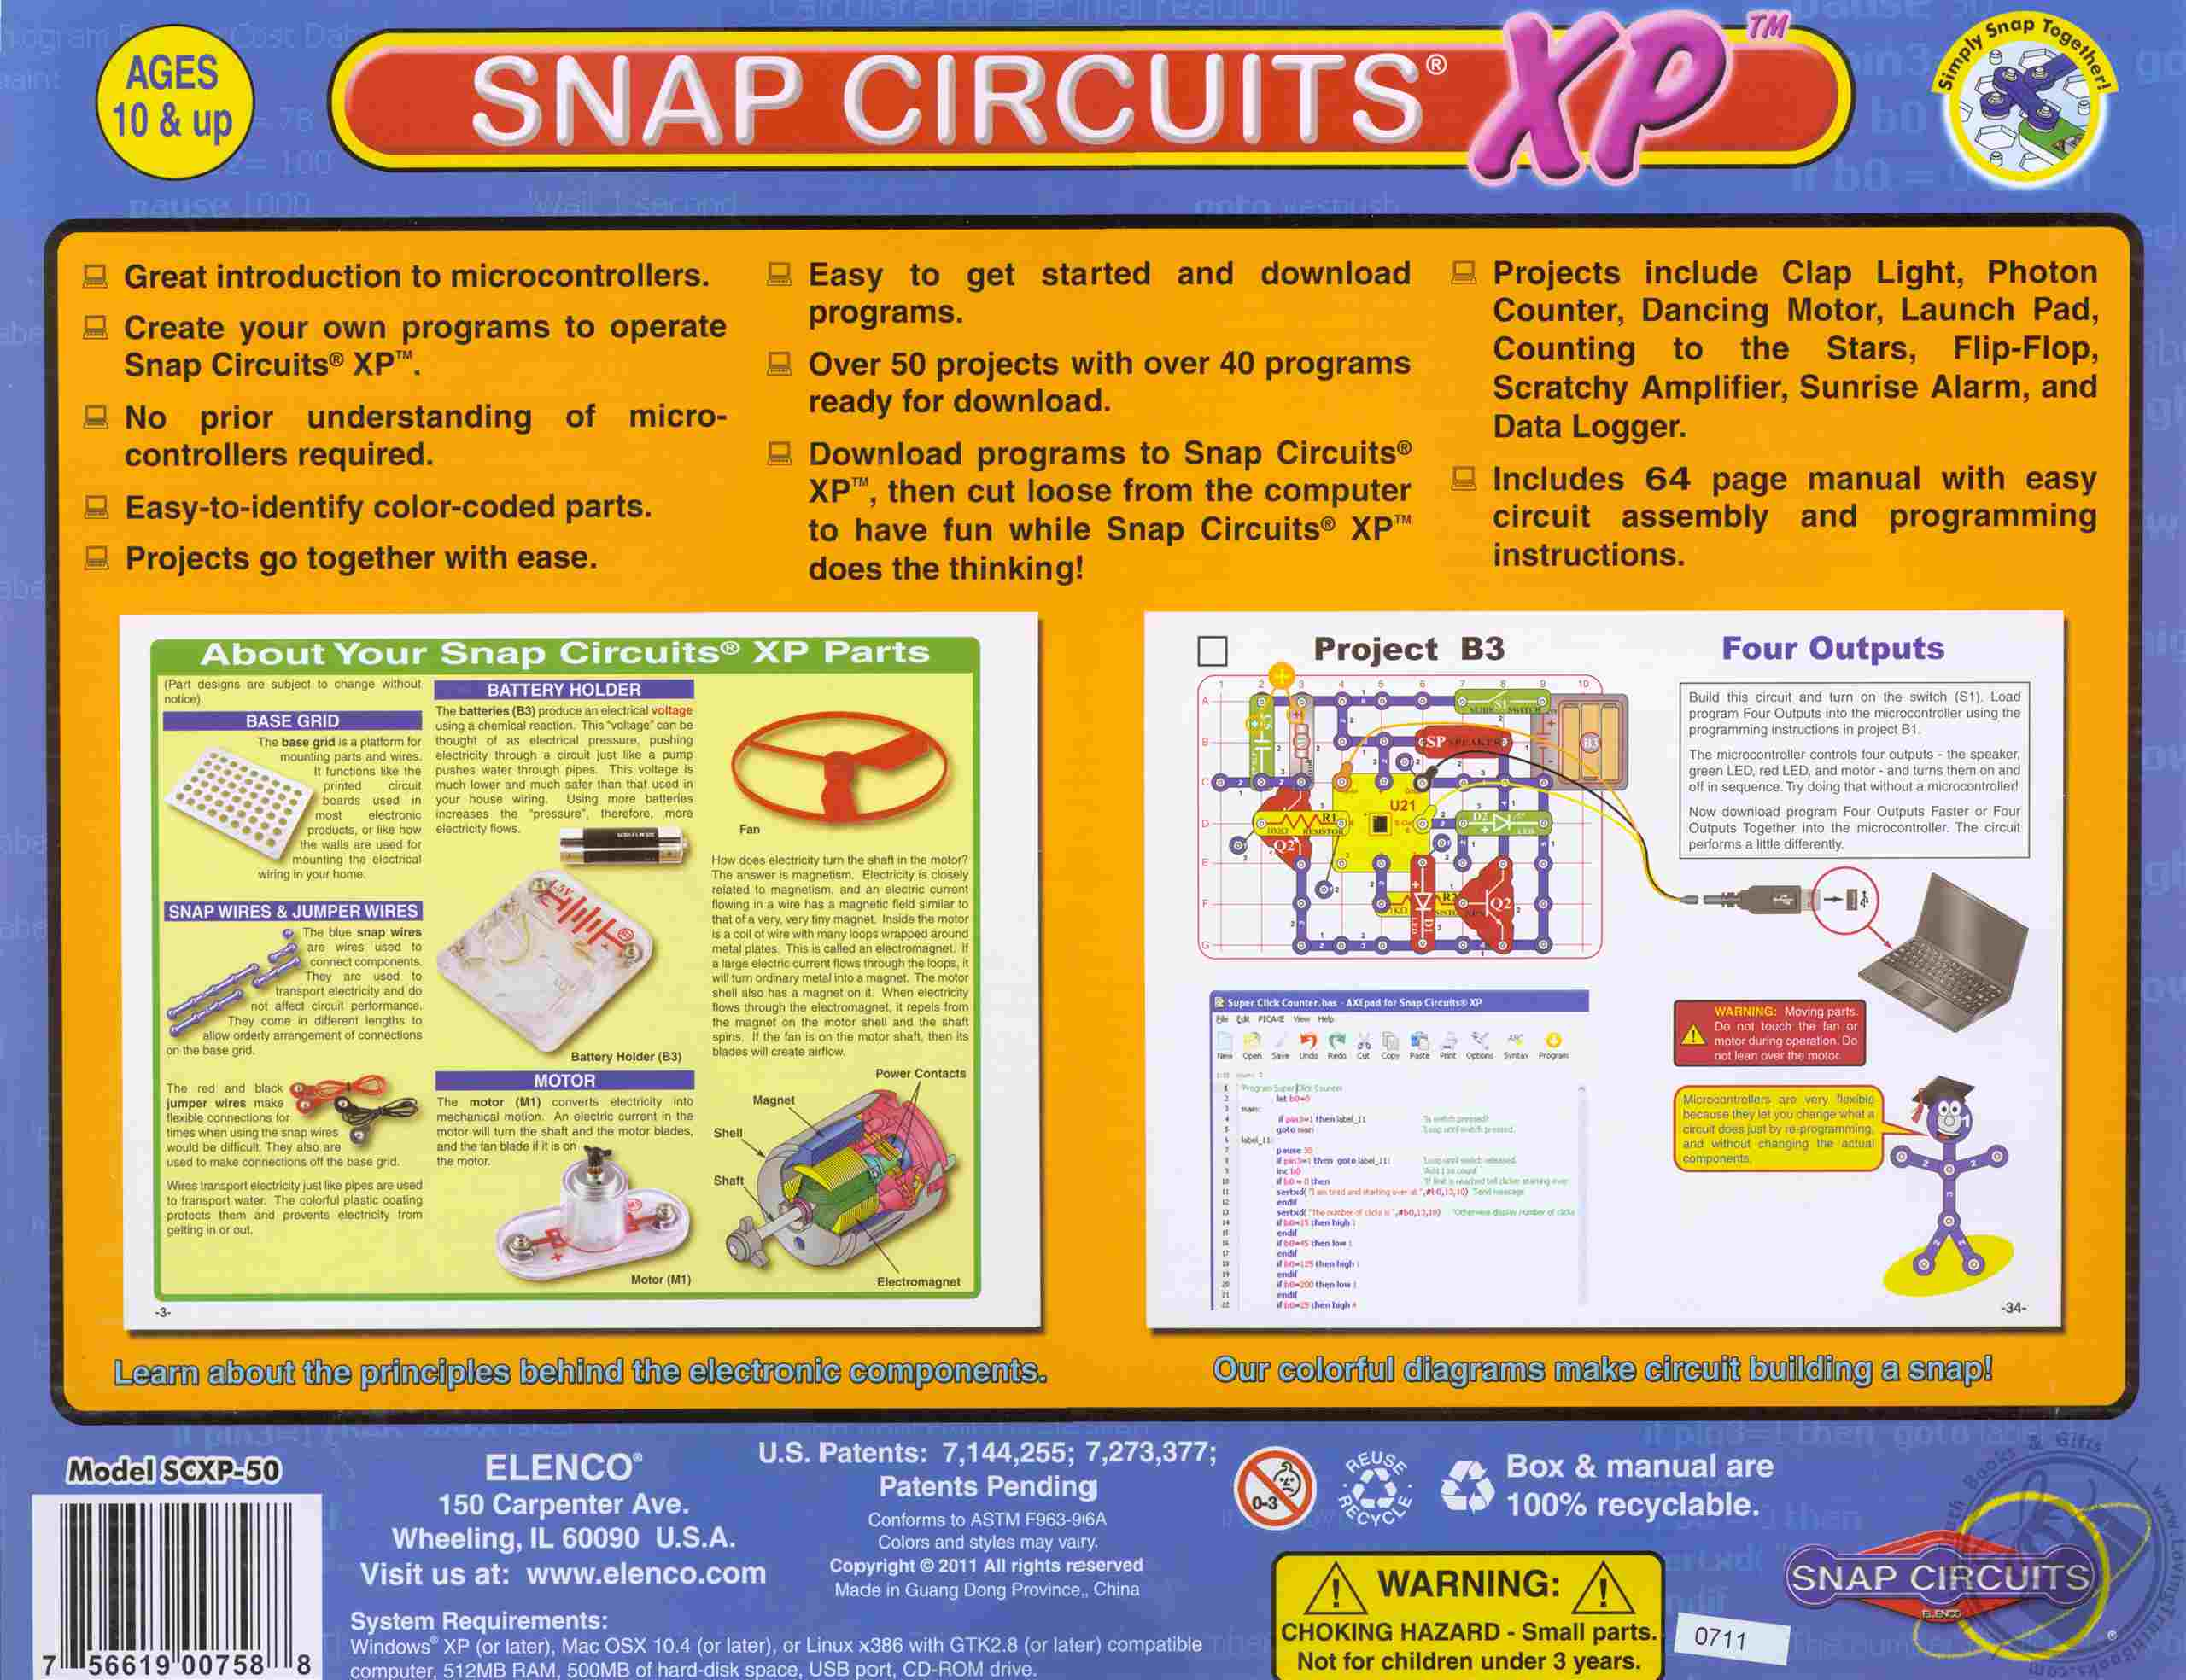 Snap Circuits Xp Build Your Own Micro Computer Electronic Circuit Parts Share With Others